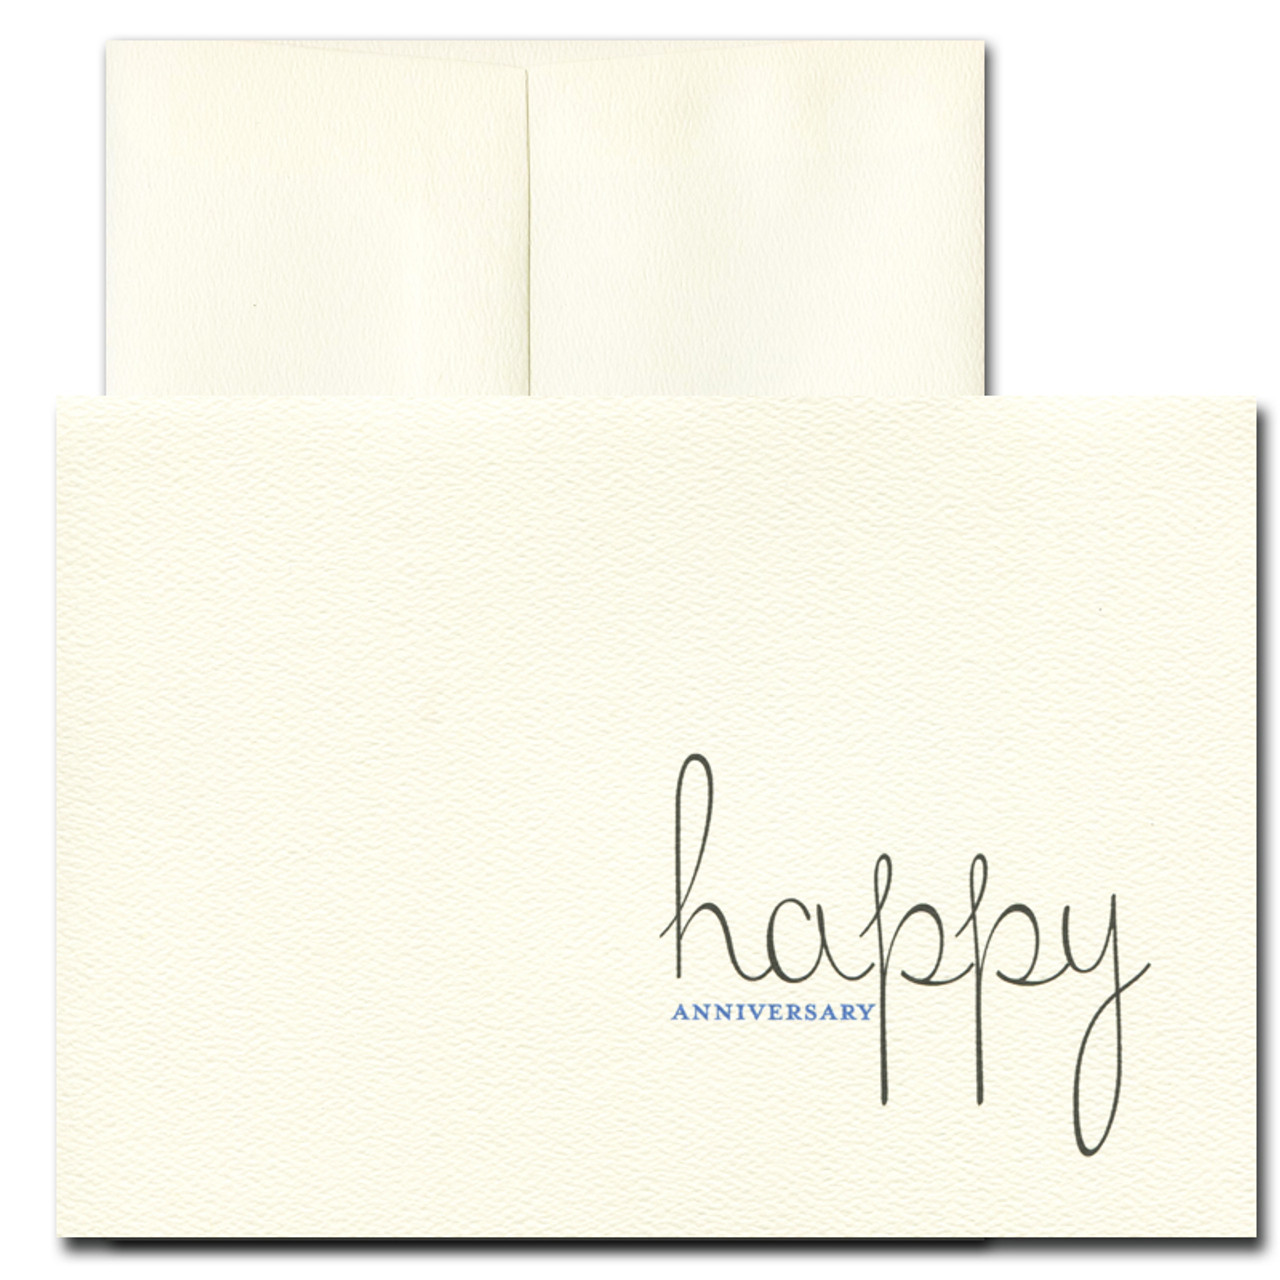 Cover of Anniversary card has Happy Anniversary in black and dark blue ink